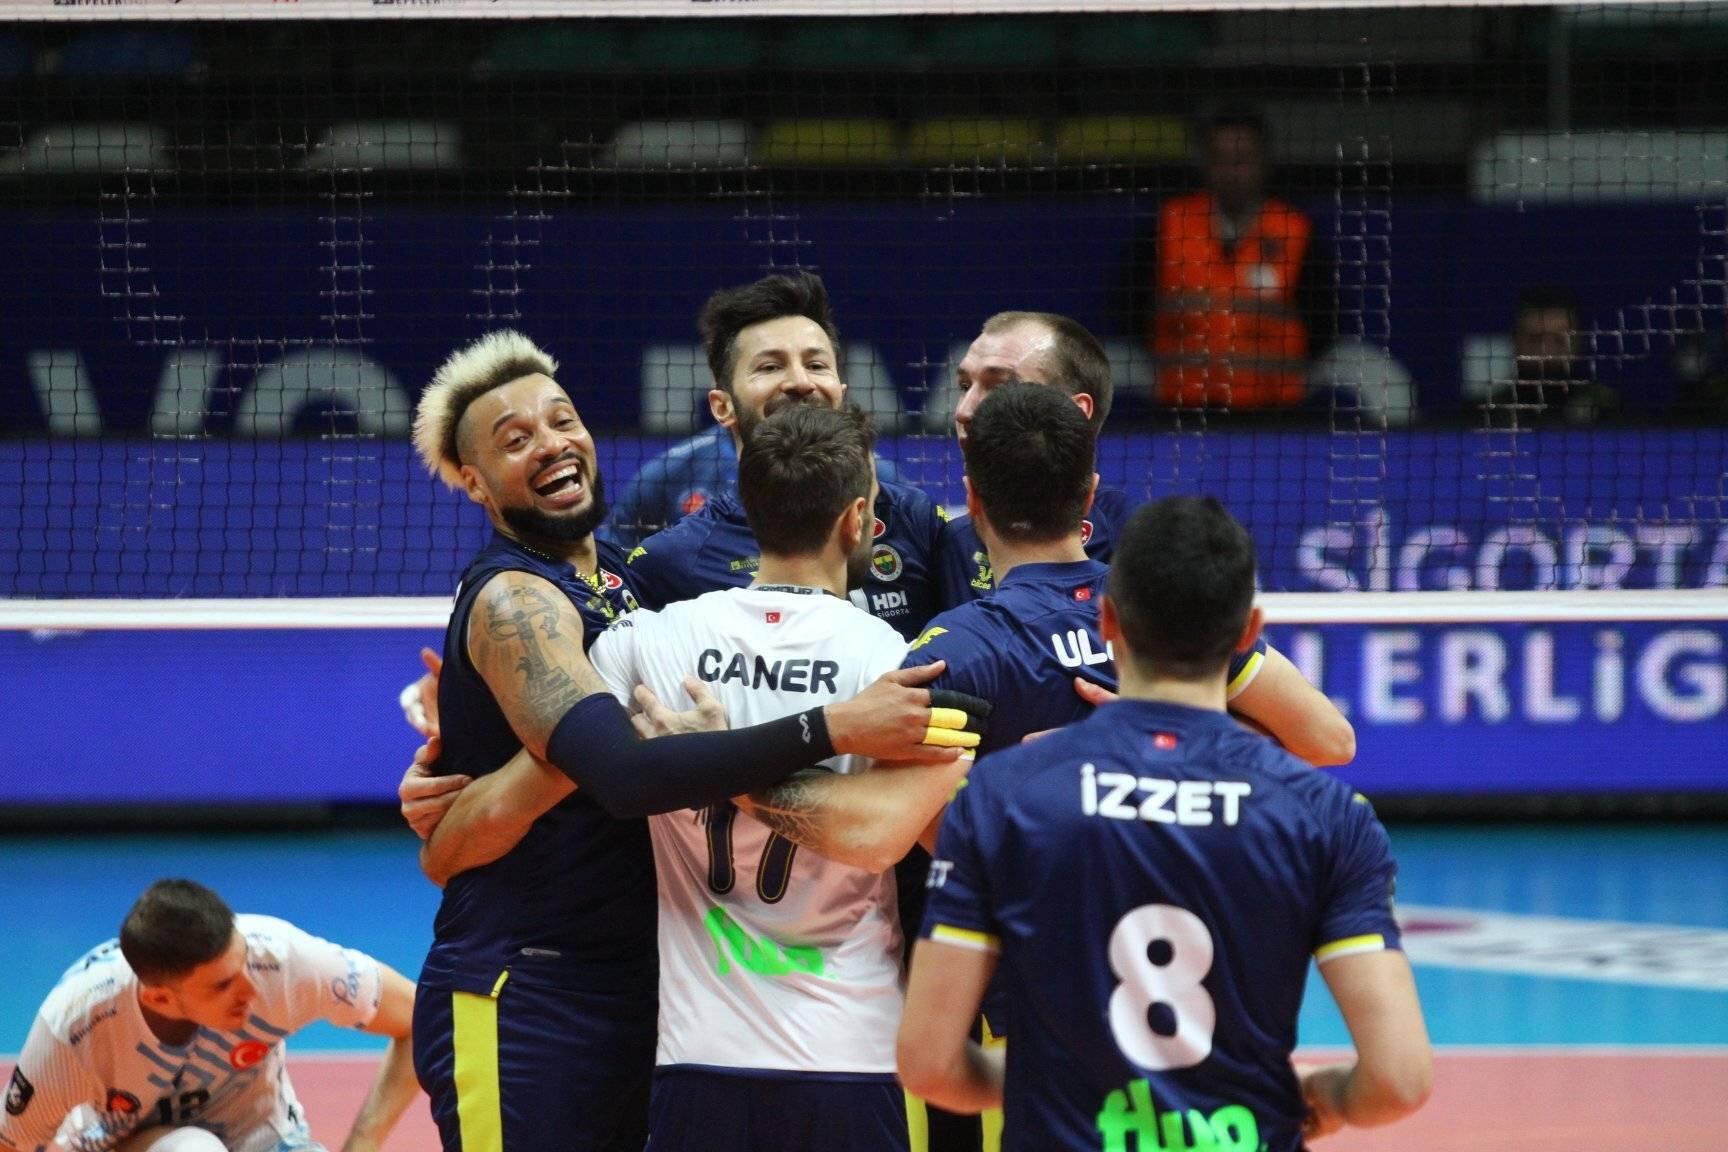 Turkey: Fenerbahçe give no chance to Halkbank to become the new leader of EfelerLigi